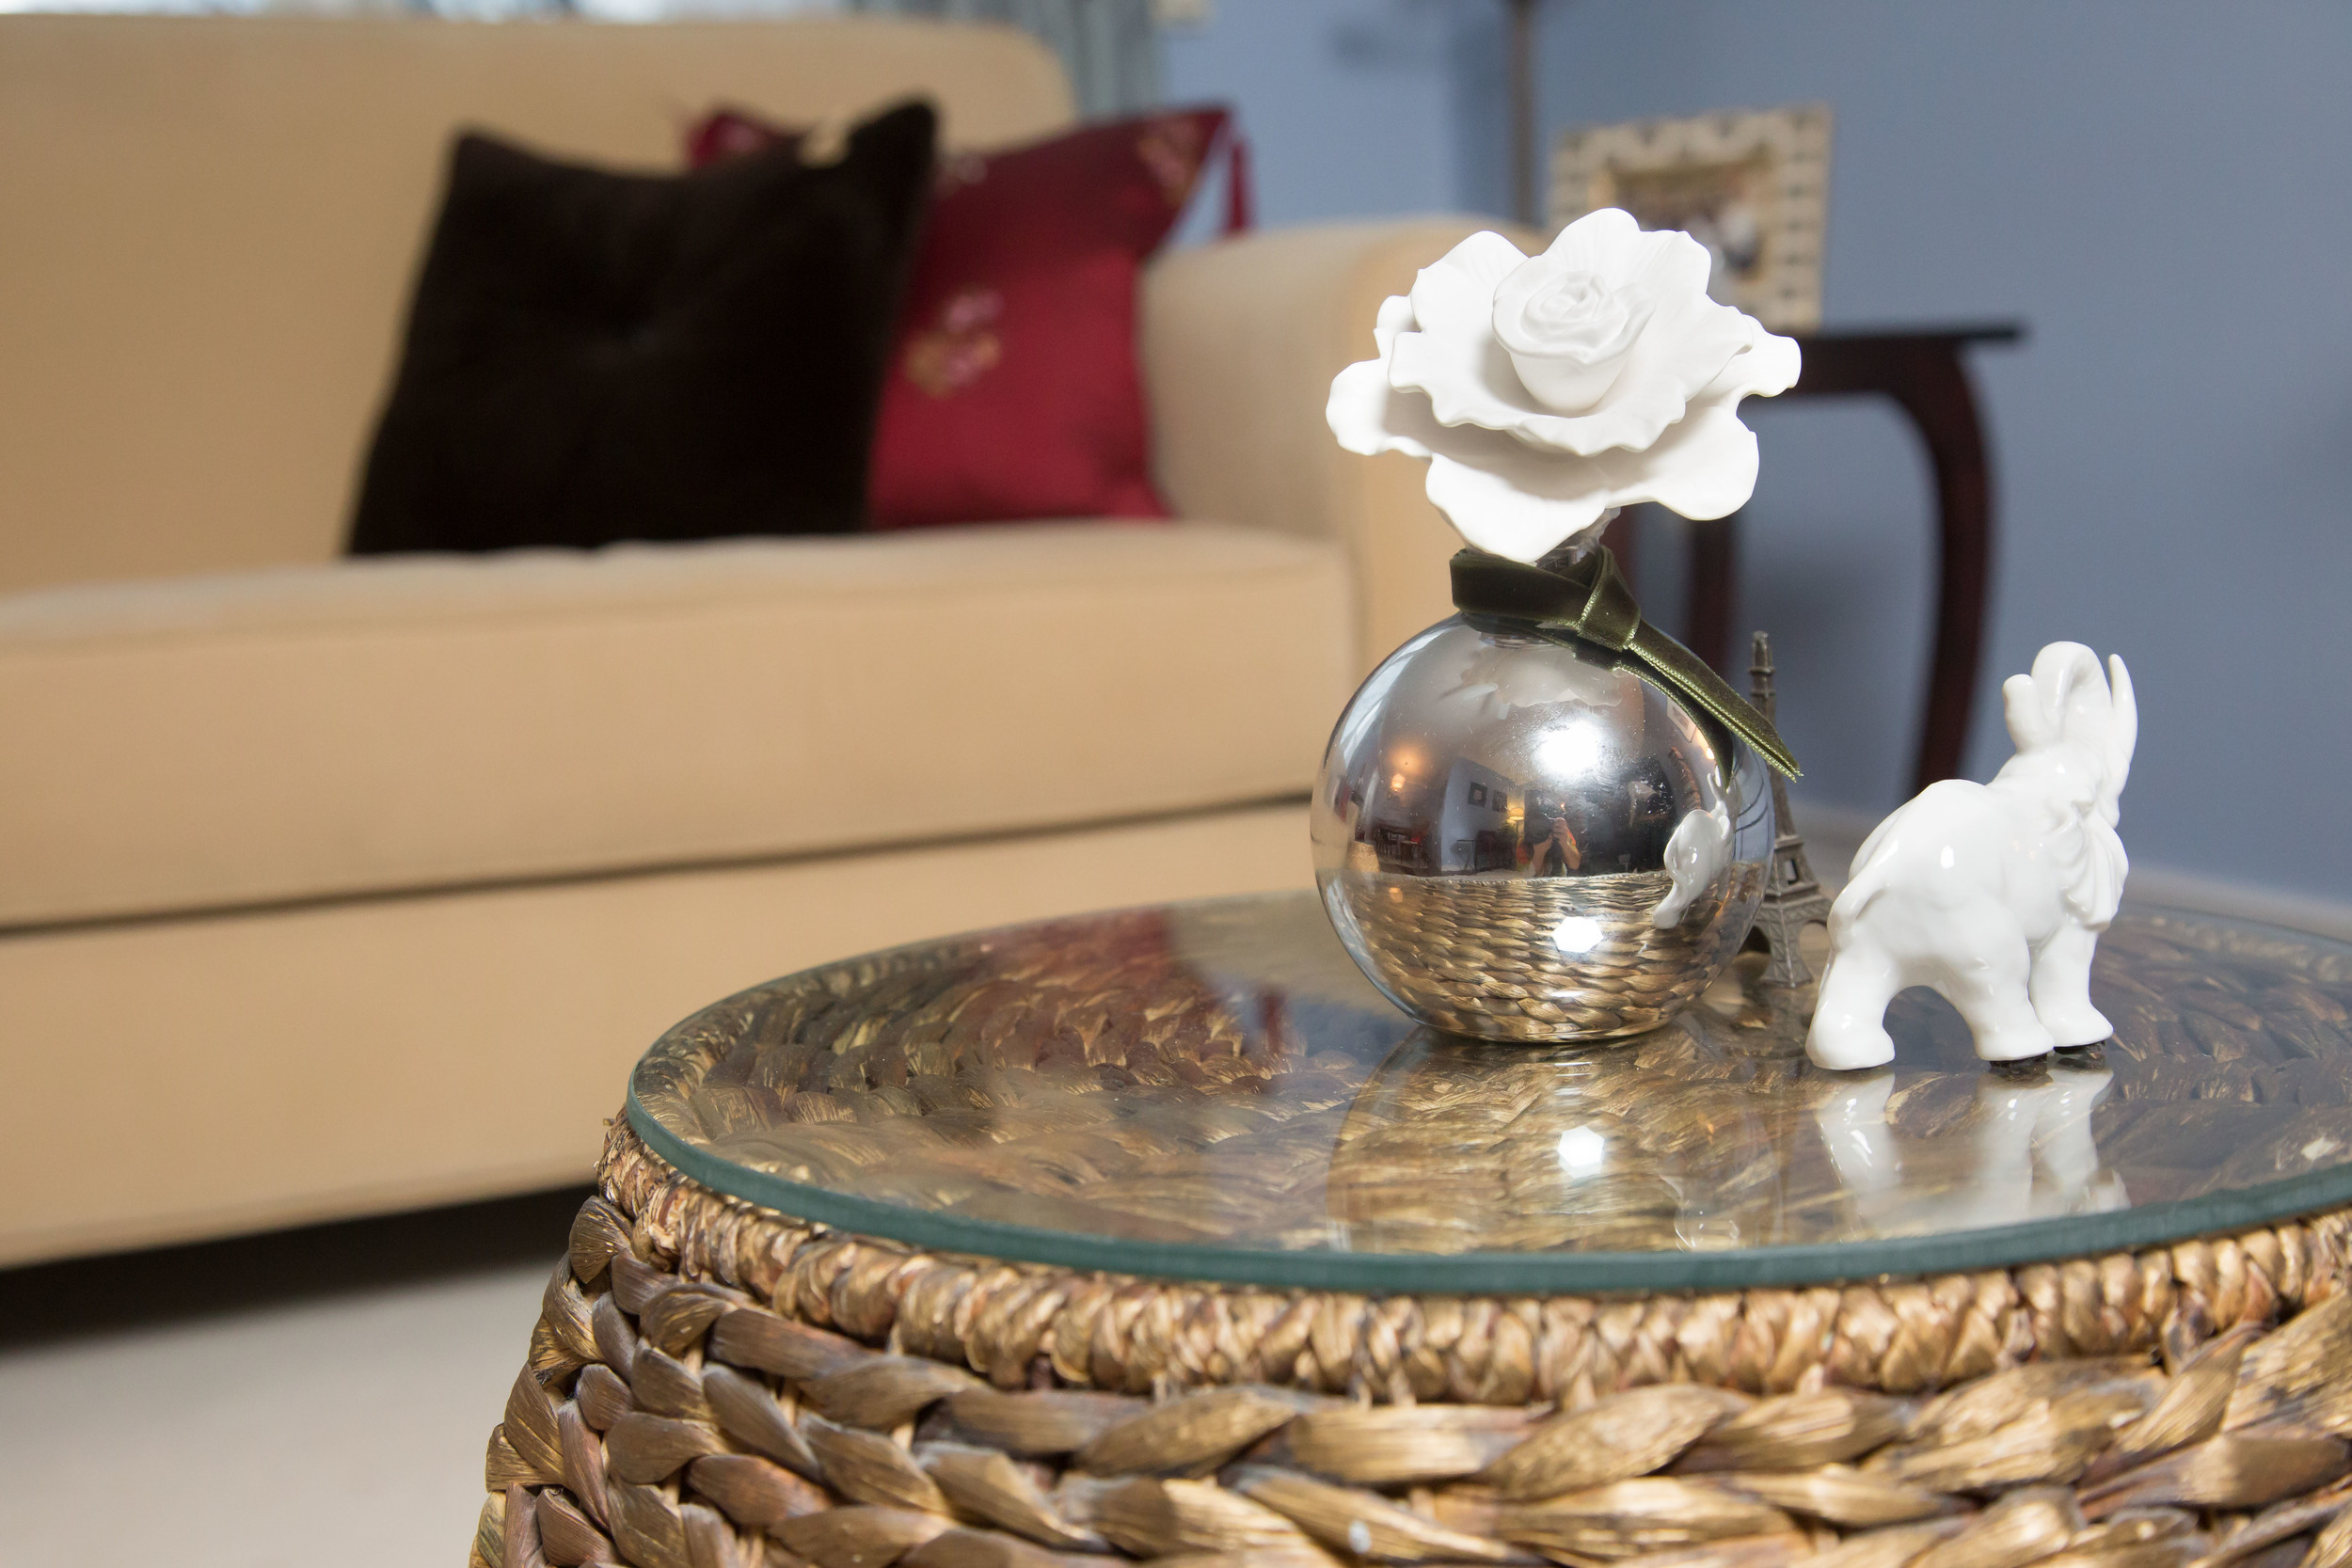 When staging incorporate a lovely mild scent to the home by using creative diffusers.  This canister with porcelain flower provides a touch of elegance.